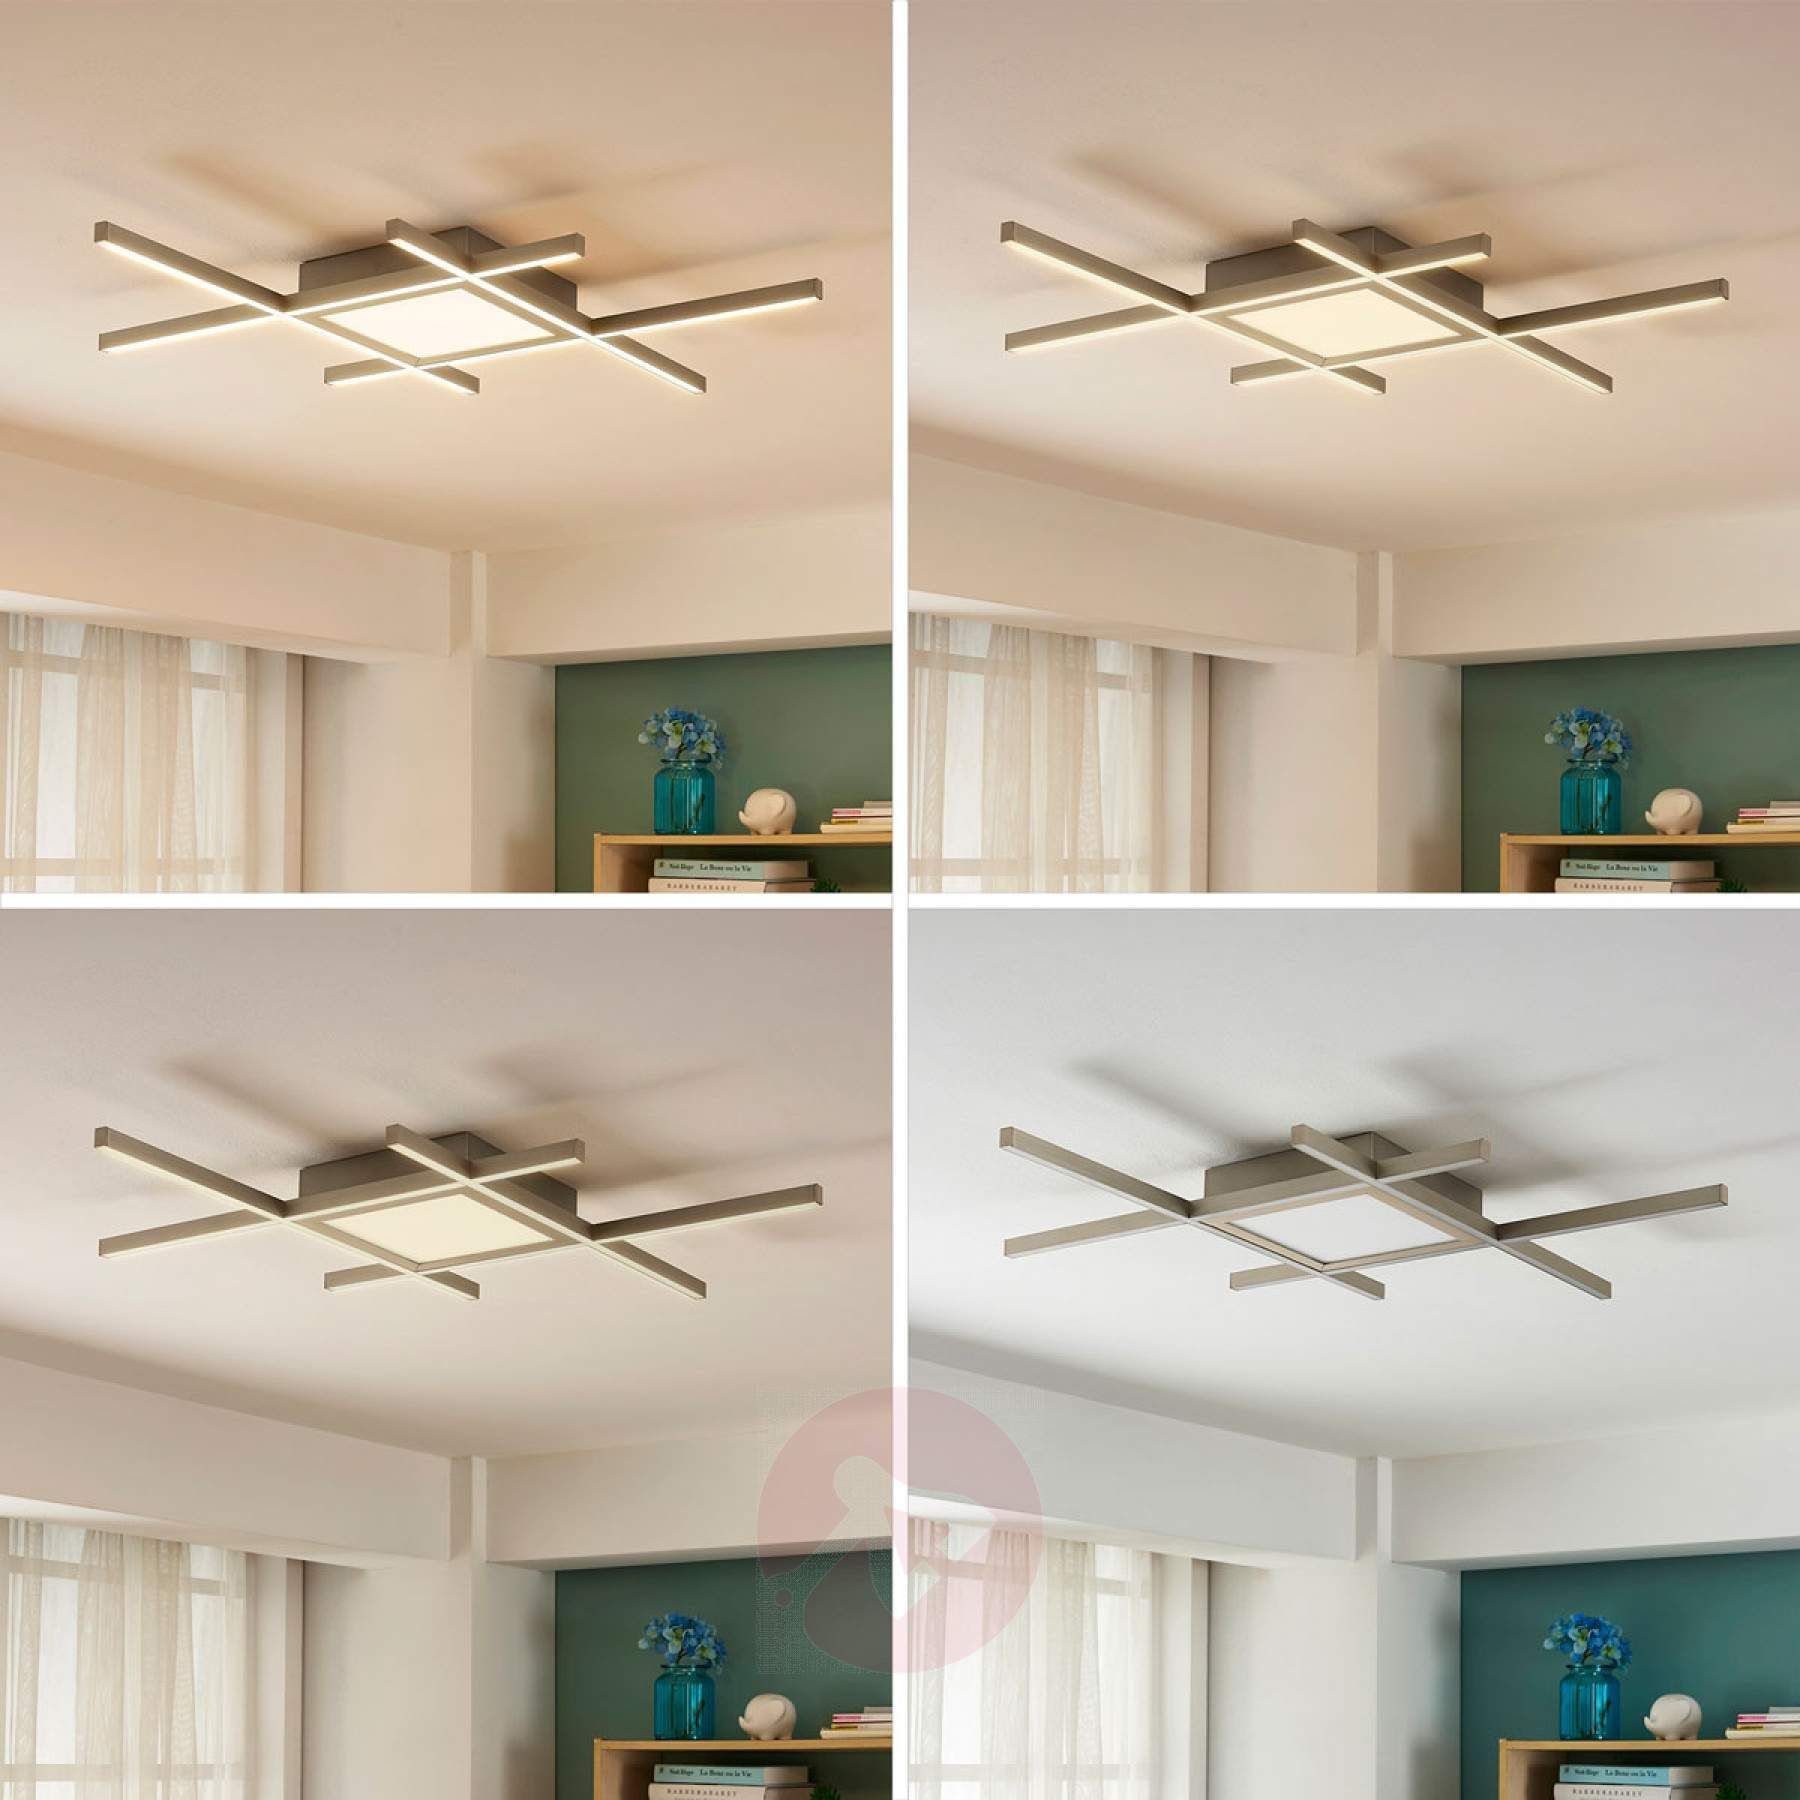 Amaro Bright Led Ceiling Lamp With Remote Control 9621249 01 Led Ceiling Lamp Ceiling Lamp Bright Led